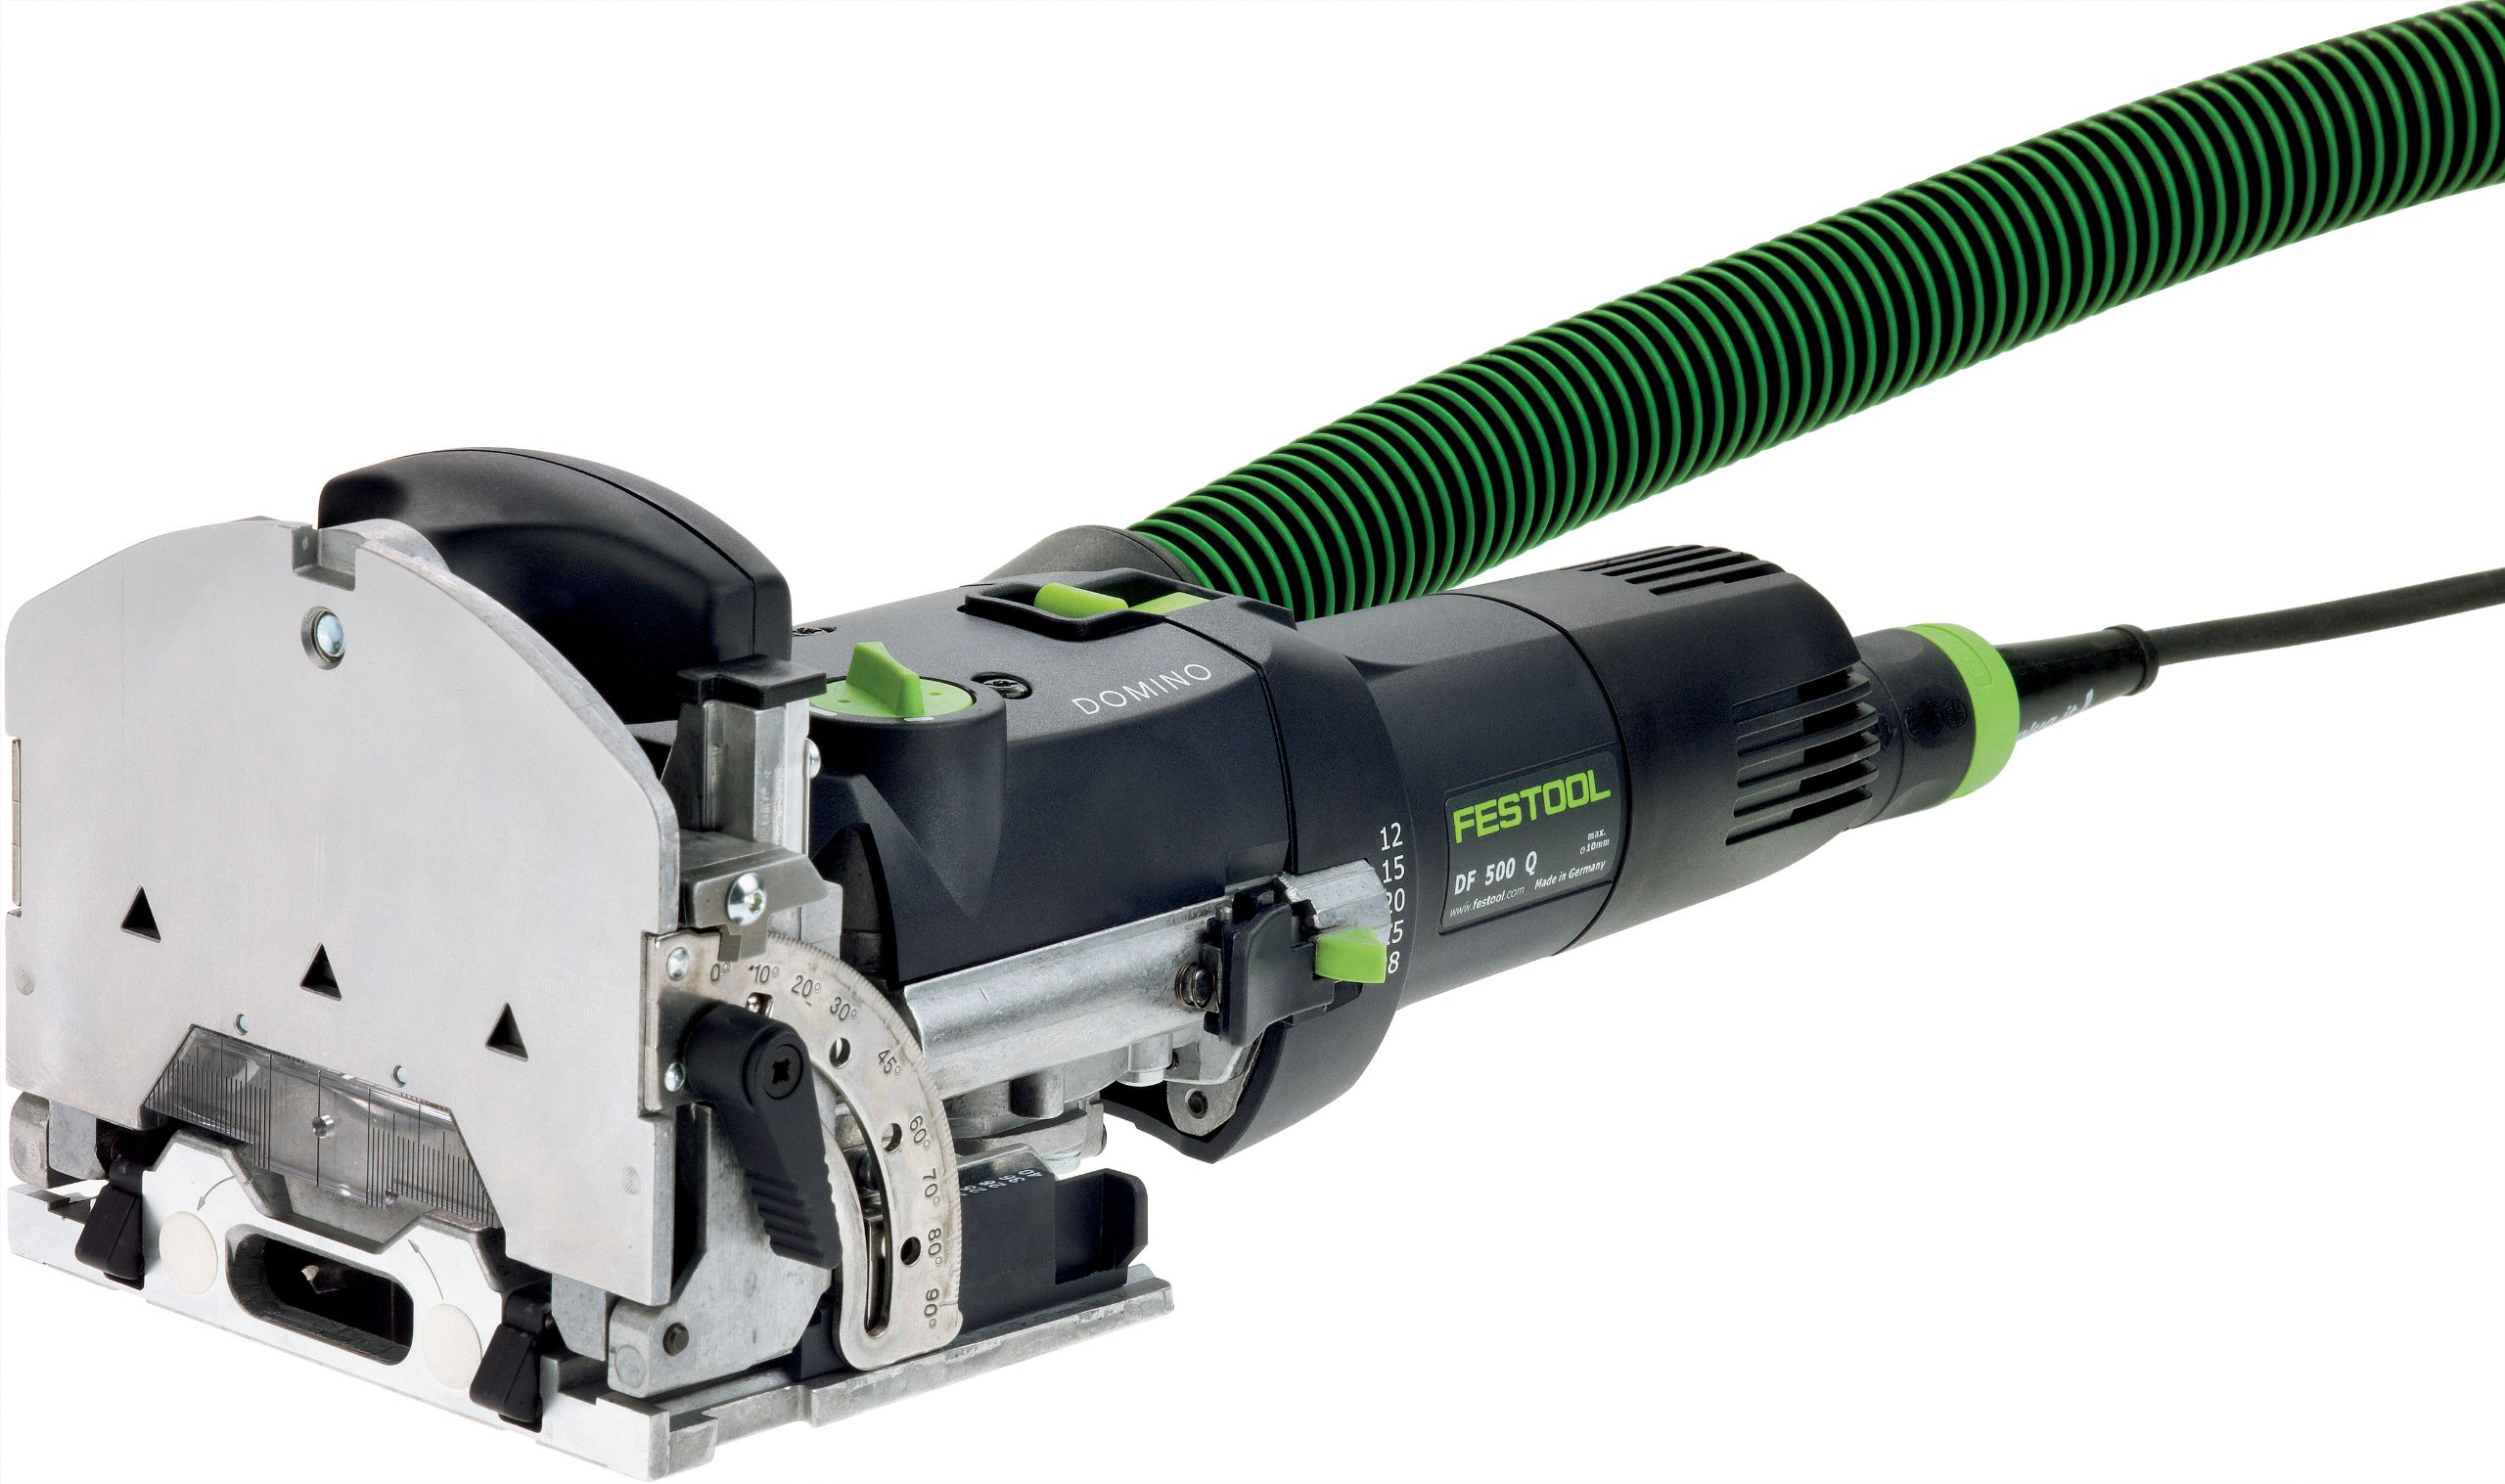 Festool 574332 Domino DF 500 Joining System by Festool